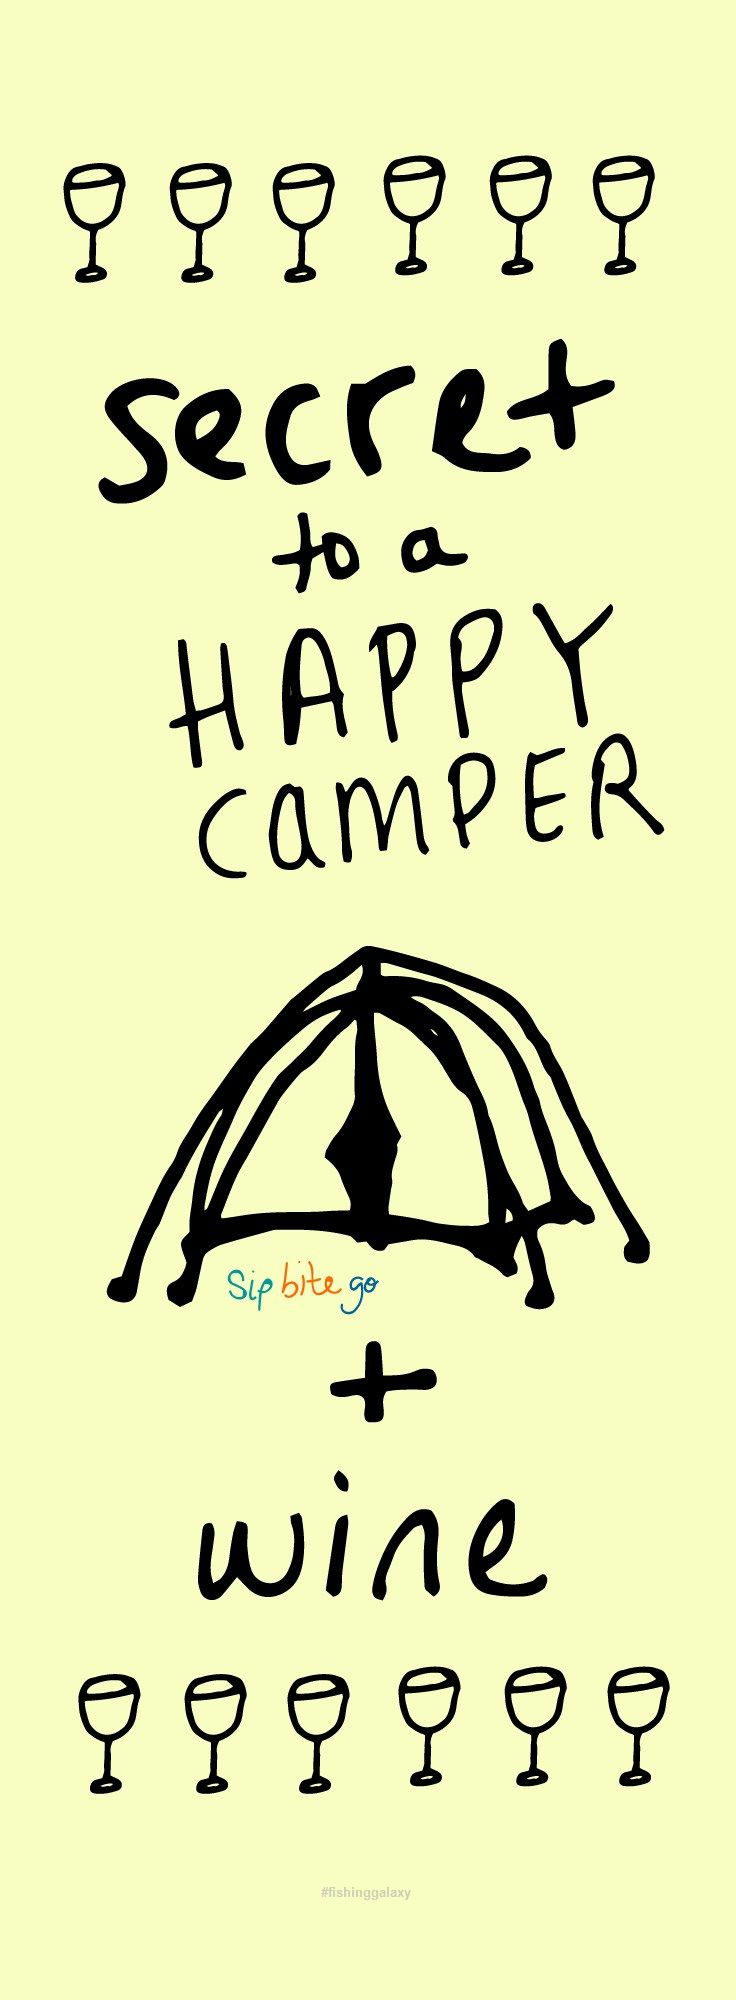 Cheerful Funny Wine Camping Quotes Gift Ideas For People Who Love And